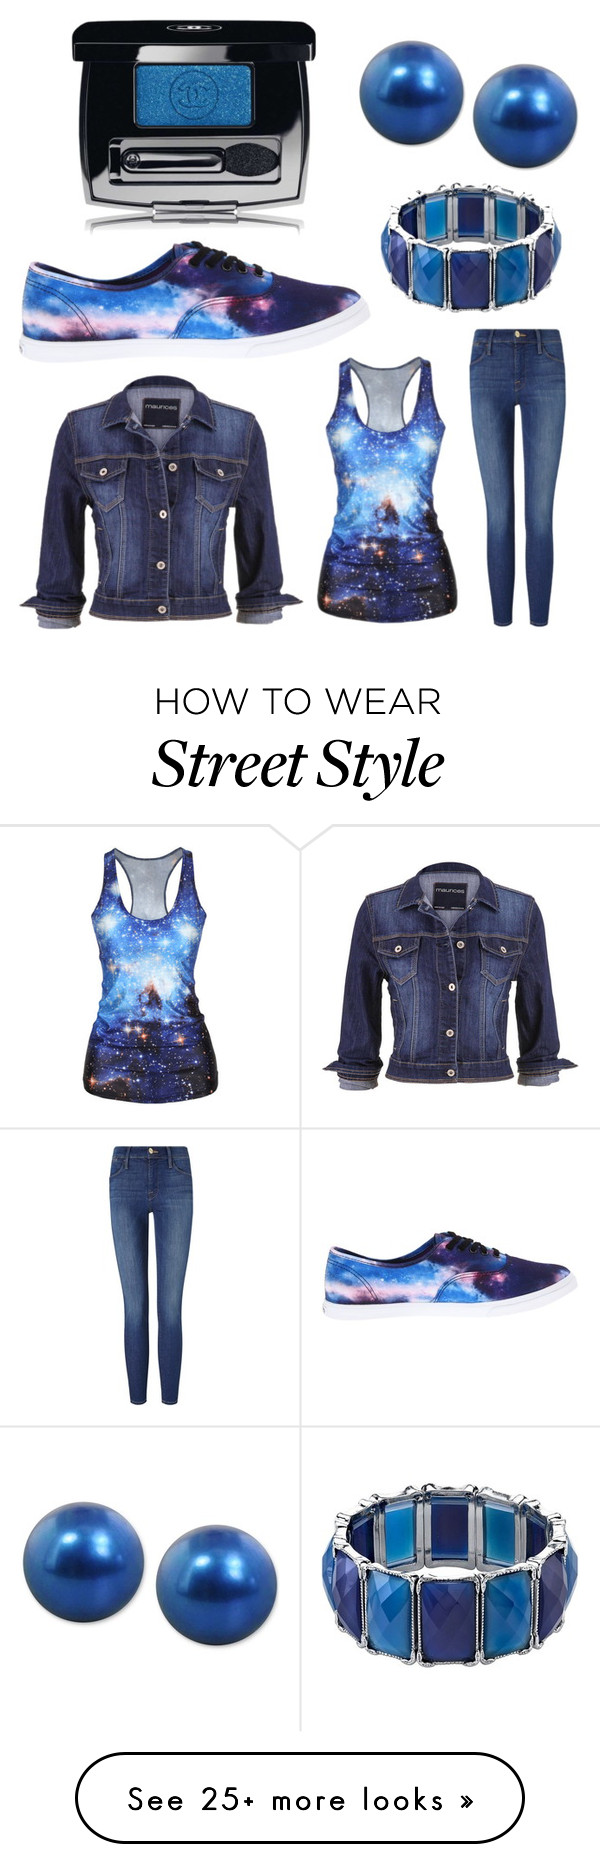 """Untitled #939"" by michelle-burns-steed on Polyvore featuring maurices, Frame Denim, Vans, 1928, Honora and Chanel"